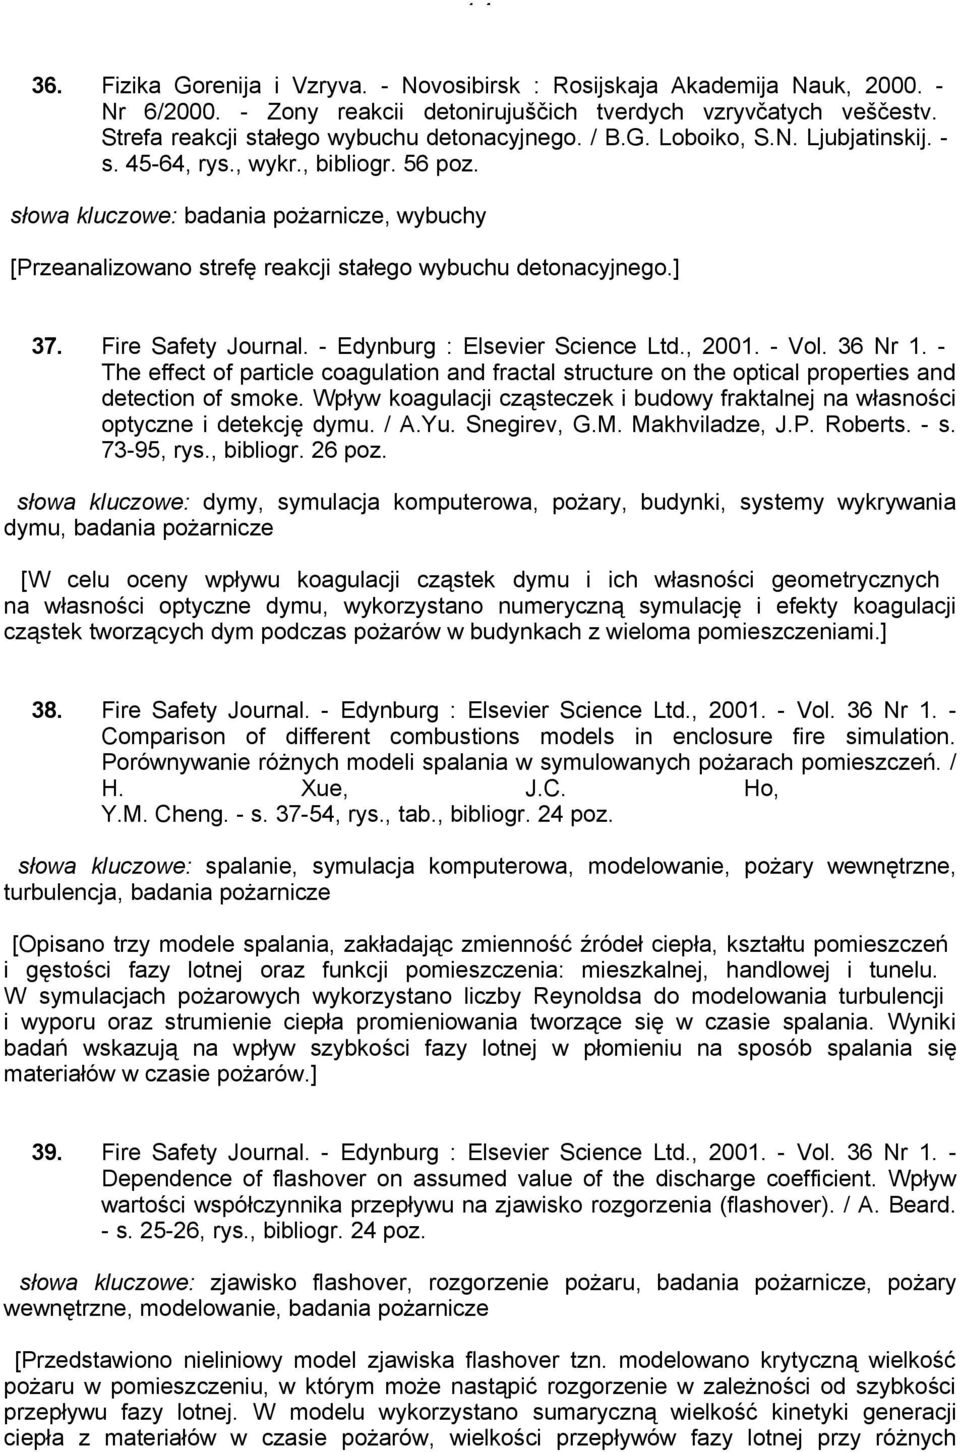 słowa kluczowe: badania pożarnicze, wybuchy [Przeanalizowano strefę reakcji stałego wybuchu detonacyjnego.] 37. Fire Safety Journal. - Edynburg : Elsevier Science Ltd., 2001. - Vol. 36 Nr 1.